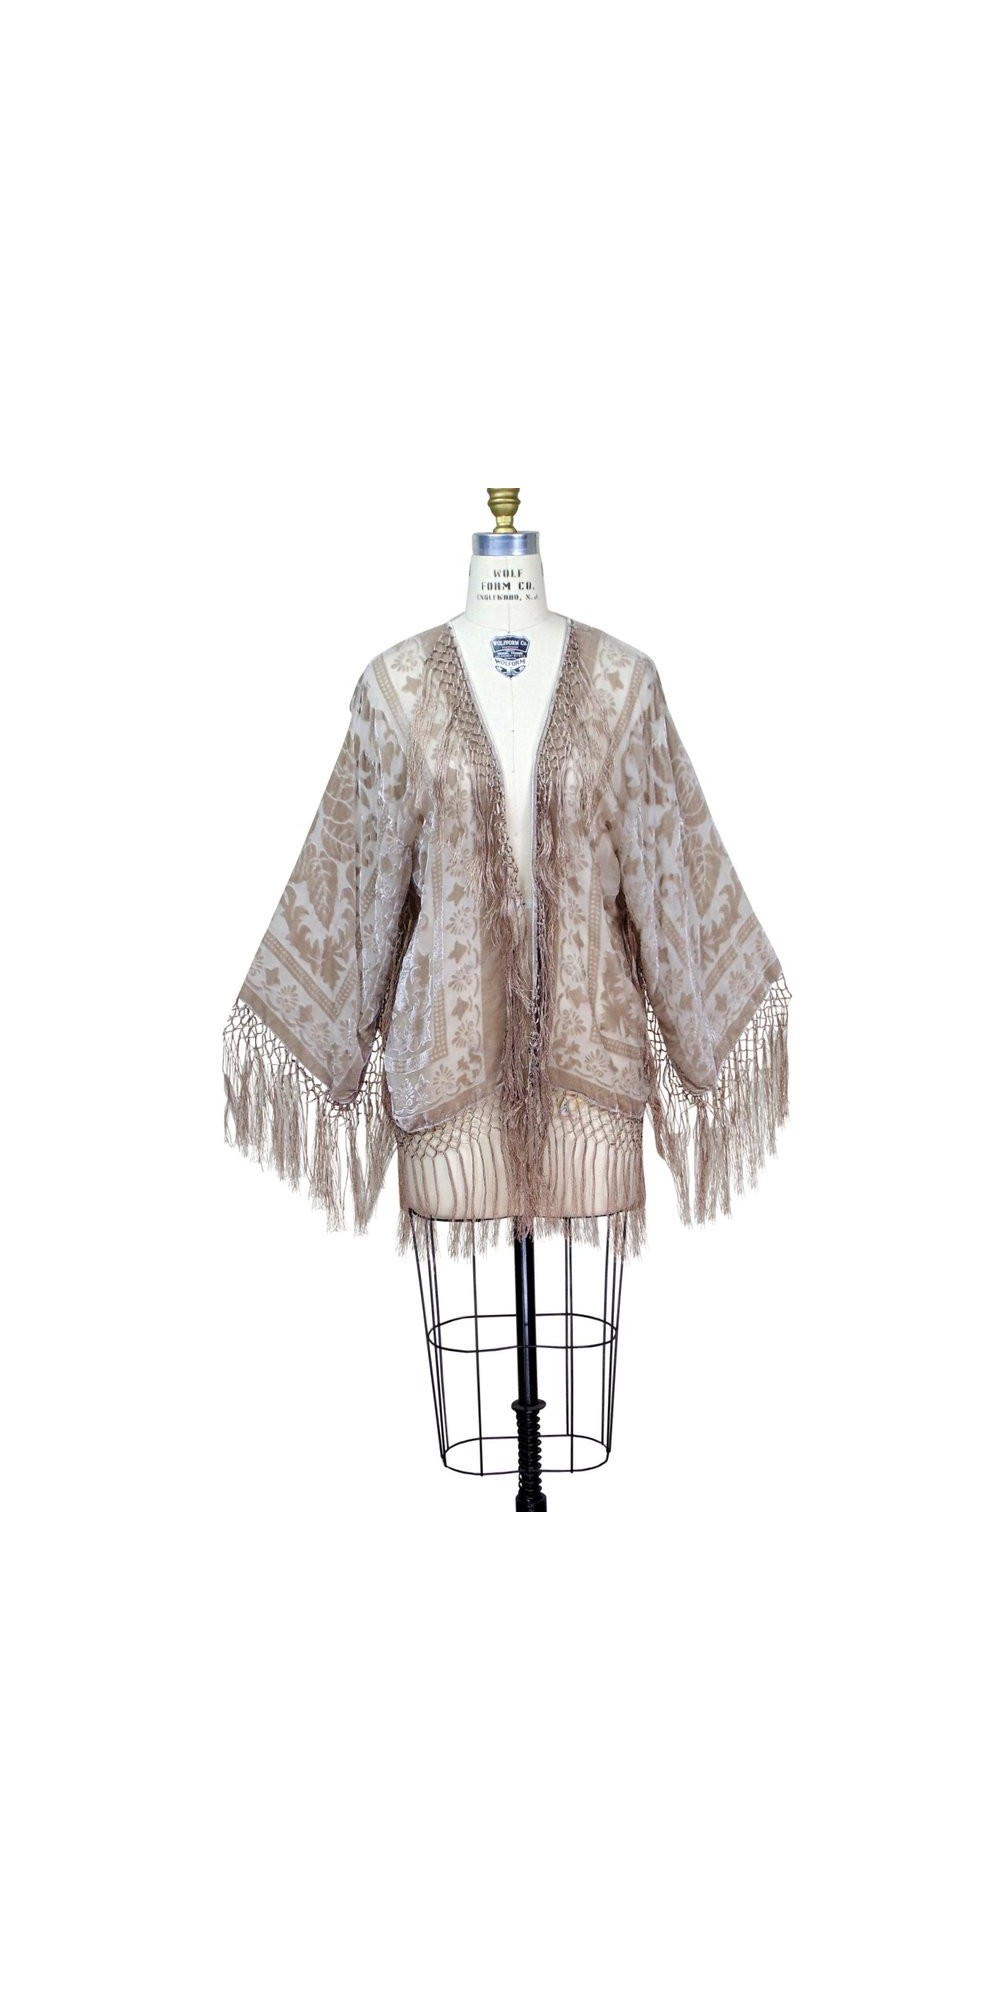 Art Deco Scarf Jacket In Champagne Rose By The Deco Haus